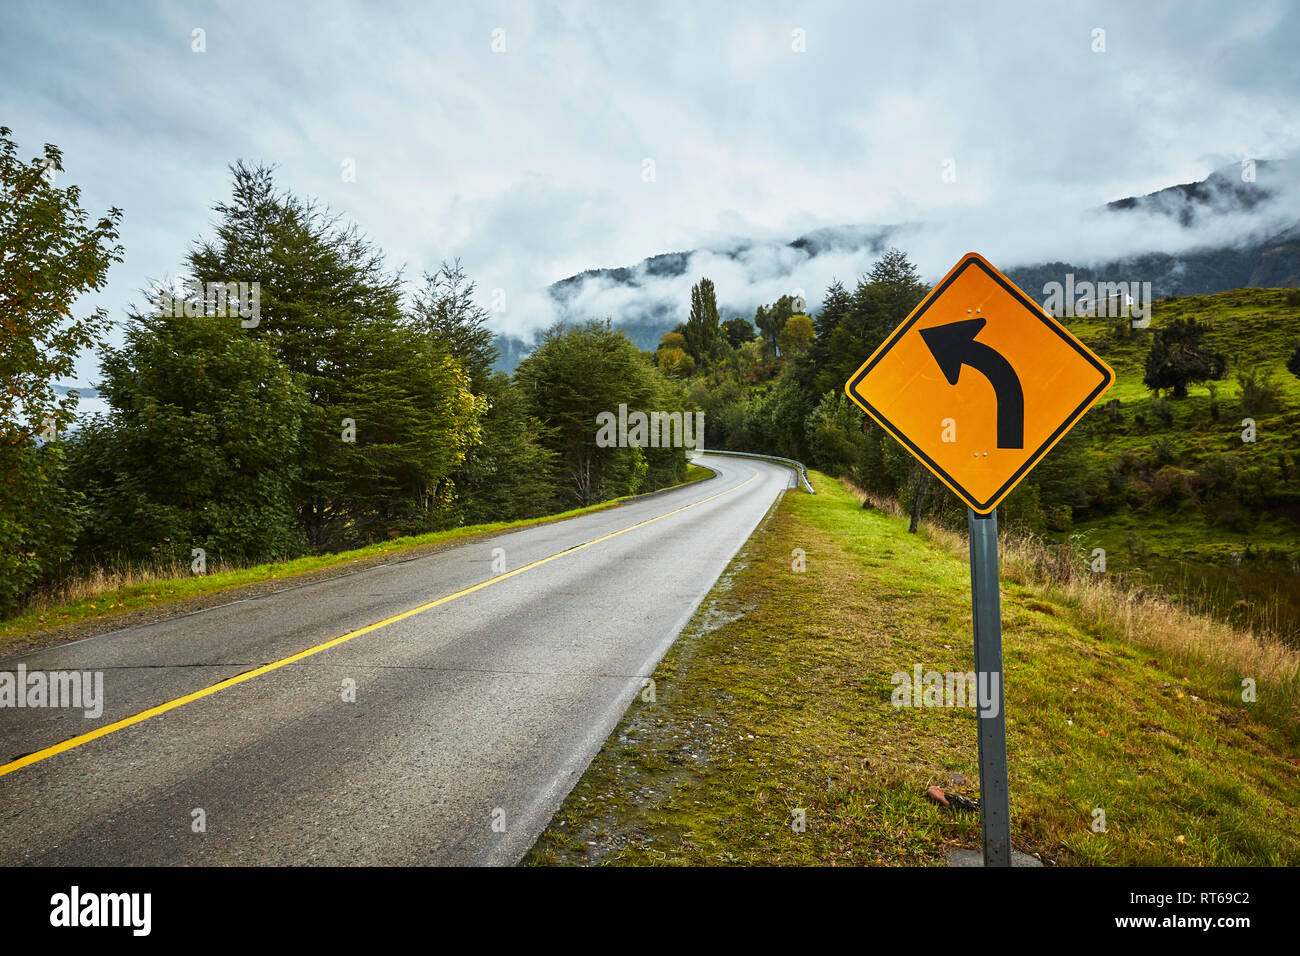 Chile, Puerto Aysen, country road in autumn with curve road sign - Stock Image